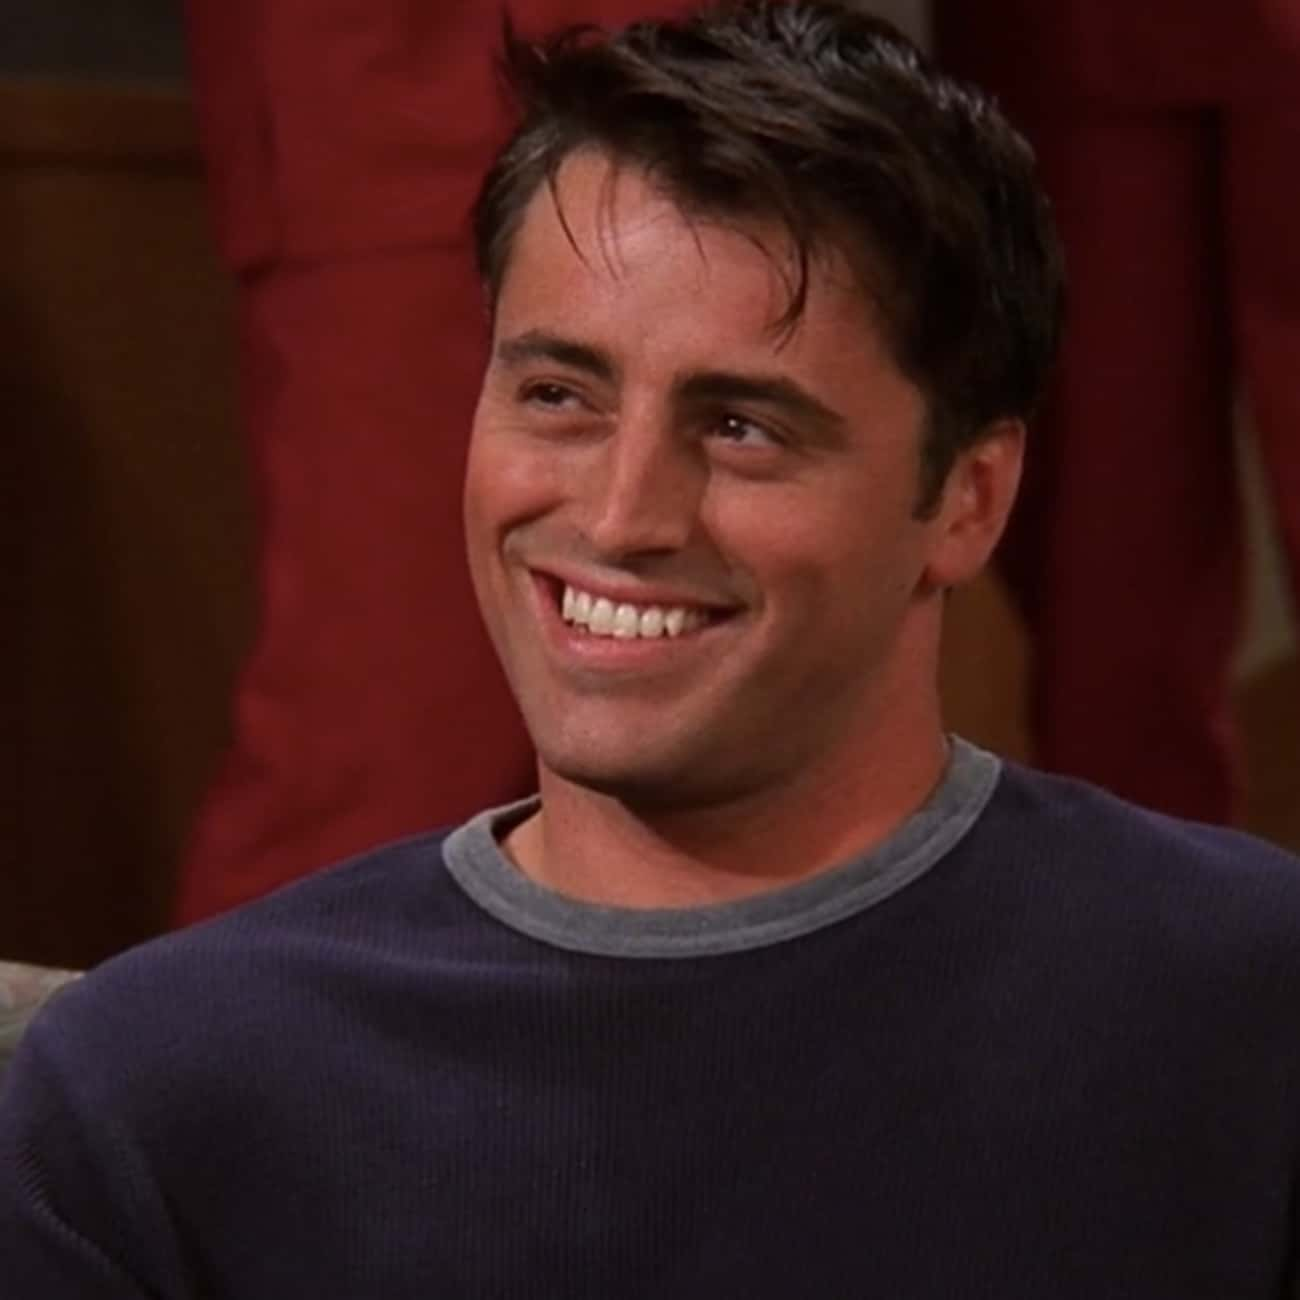 Joey Tribbiani is listed (or ranked) 3 on the list The Most Memorable Ex-Boyfriends In TV History